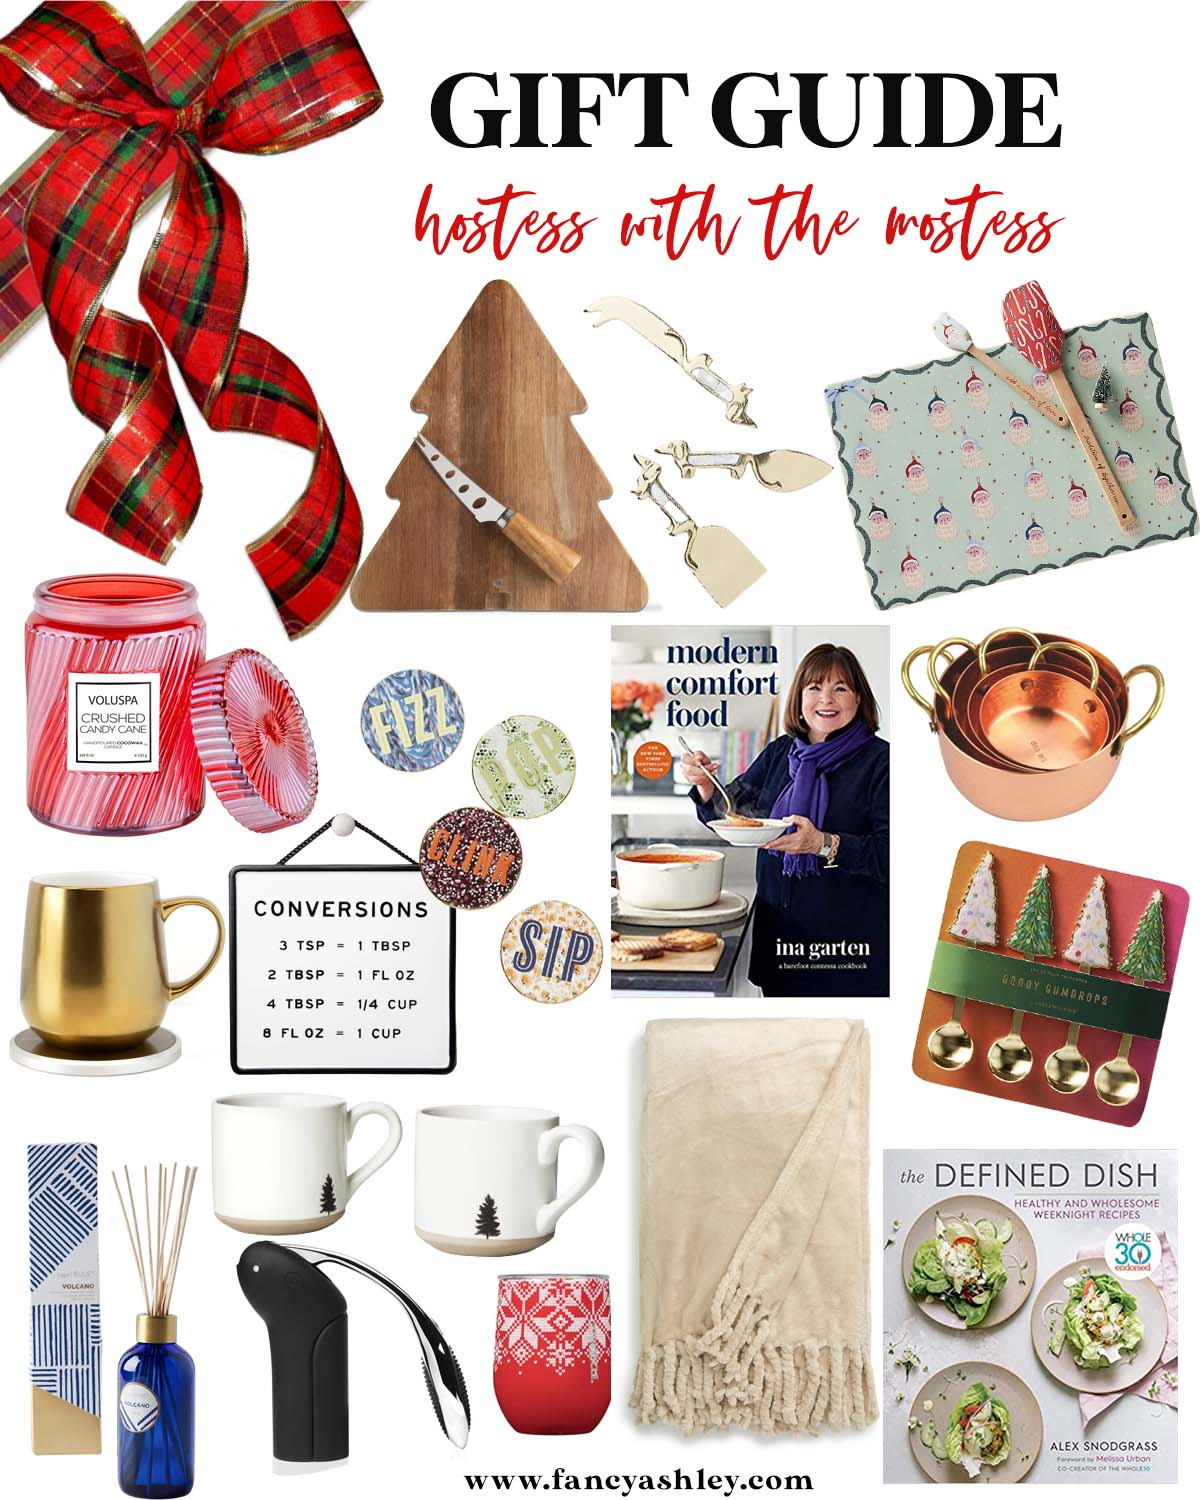 Hostess Gifts by popular Houston life and style blog, Fancy Ashley: collage image of tree shaped cutting board, gold cheese knives, Santa silicone baking mat and red spatula set, Voluspa Candle, coasters, Ina Garten cook book, copper pots, white ceramic mugs, Volcano incense, cream throw blanket, Defined Dish cookbook, mug warmer, conversion sign, and tree spoons.